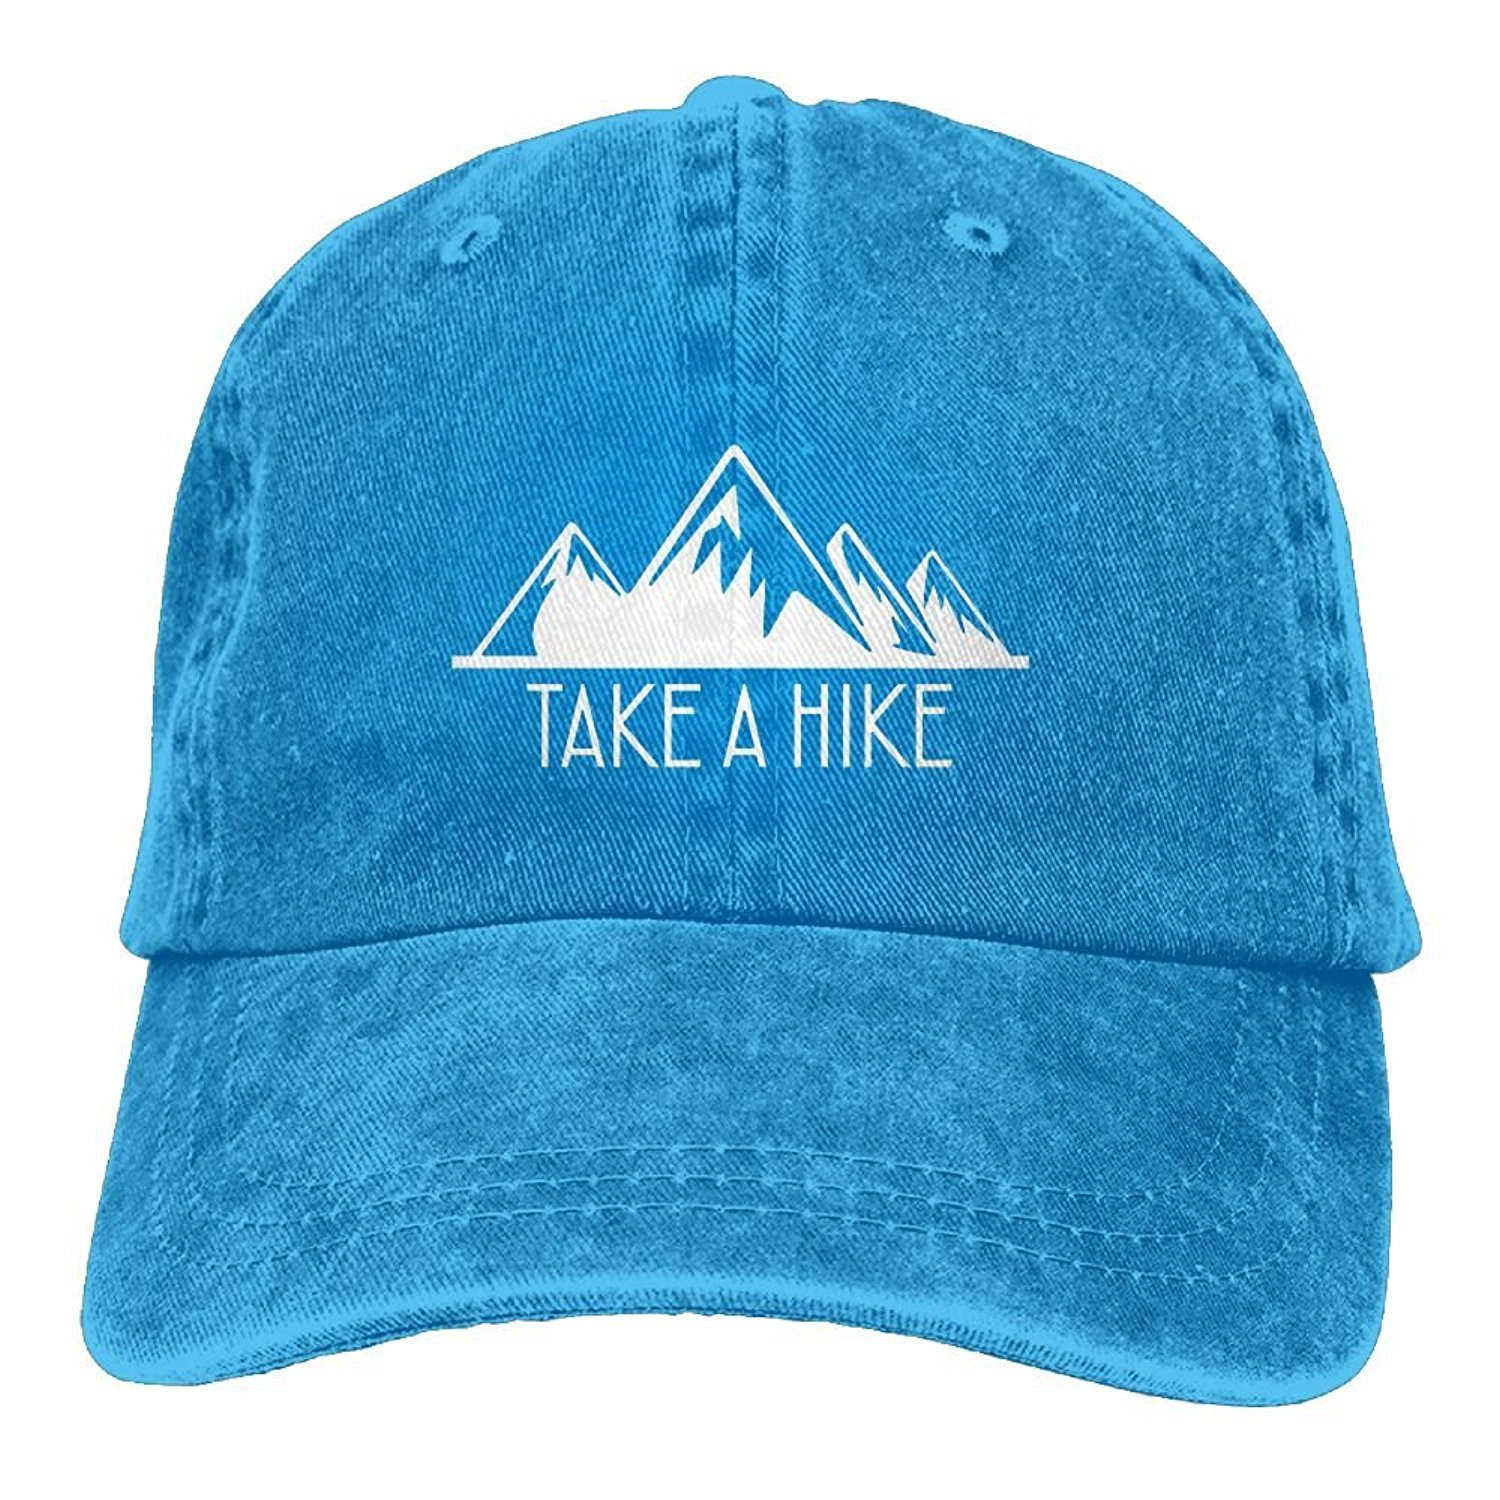 Take A Hike Mountains Retro Unisex Adjustable Cotton Denim Hat Washed Retro Gym Hat